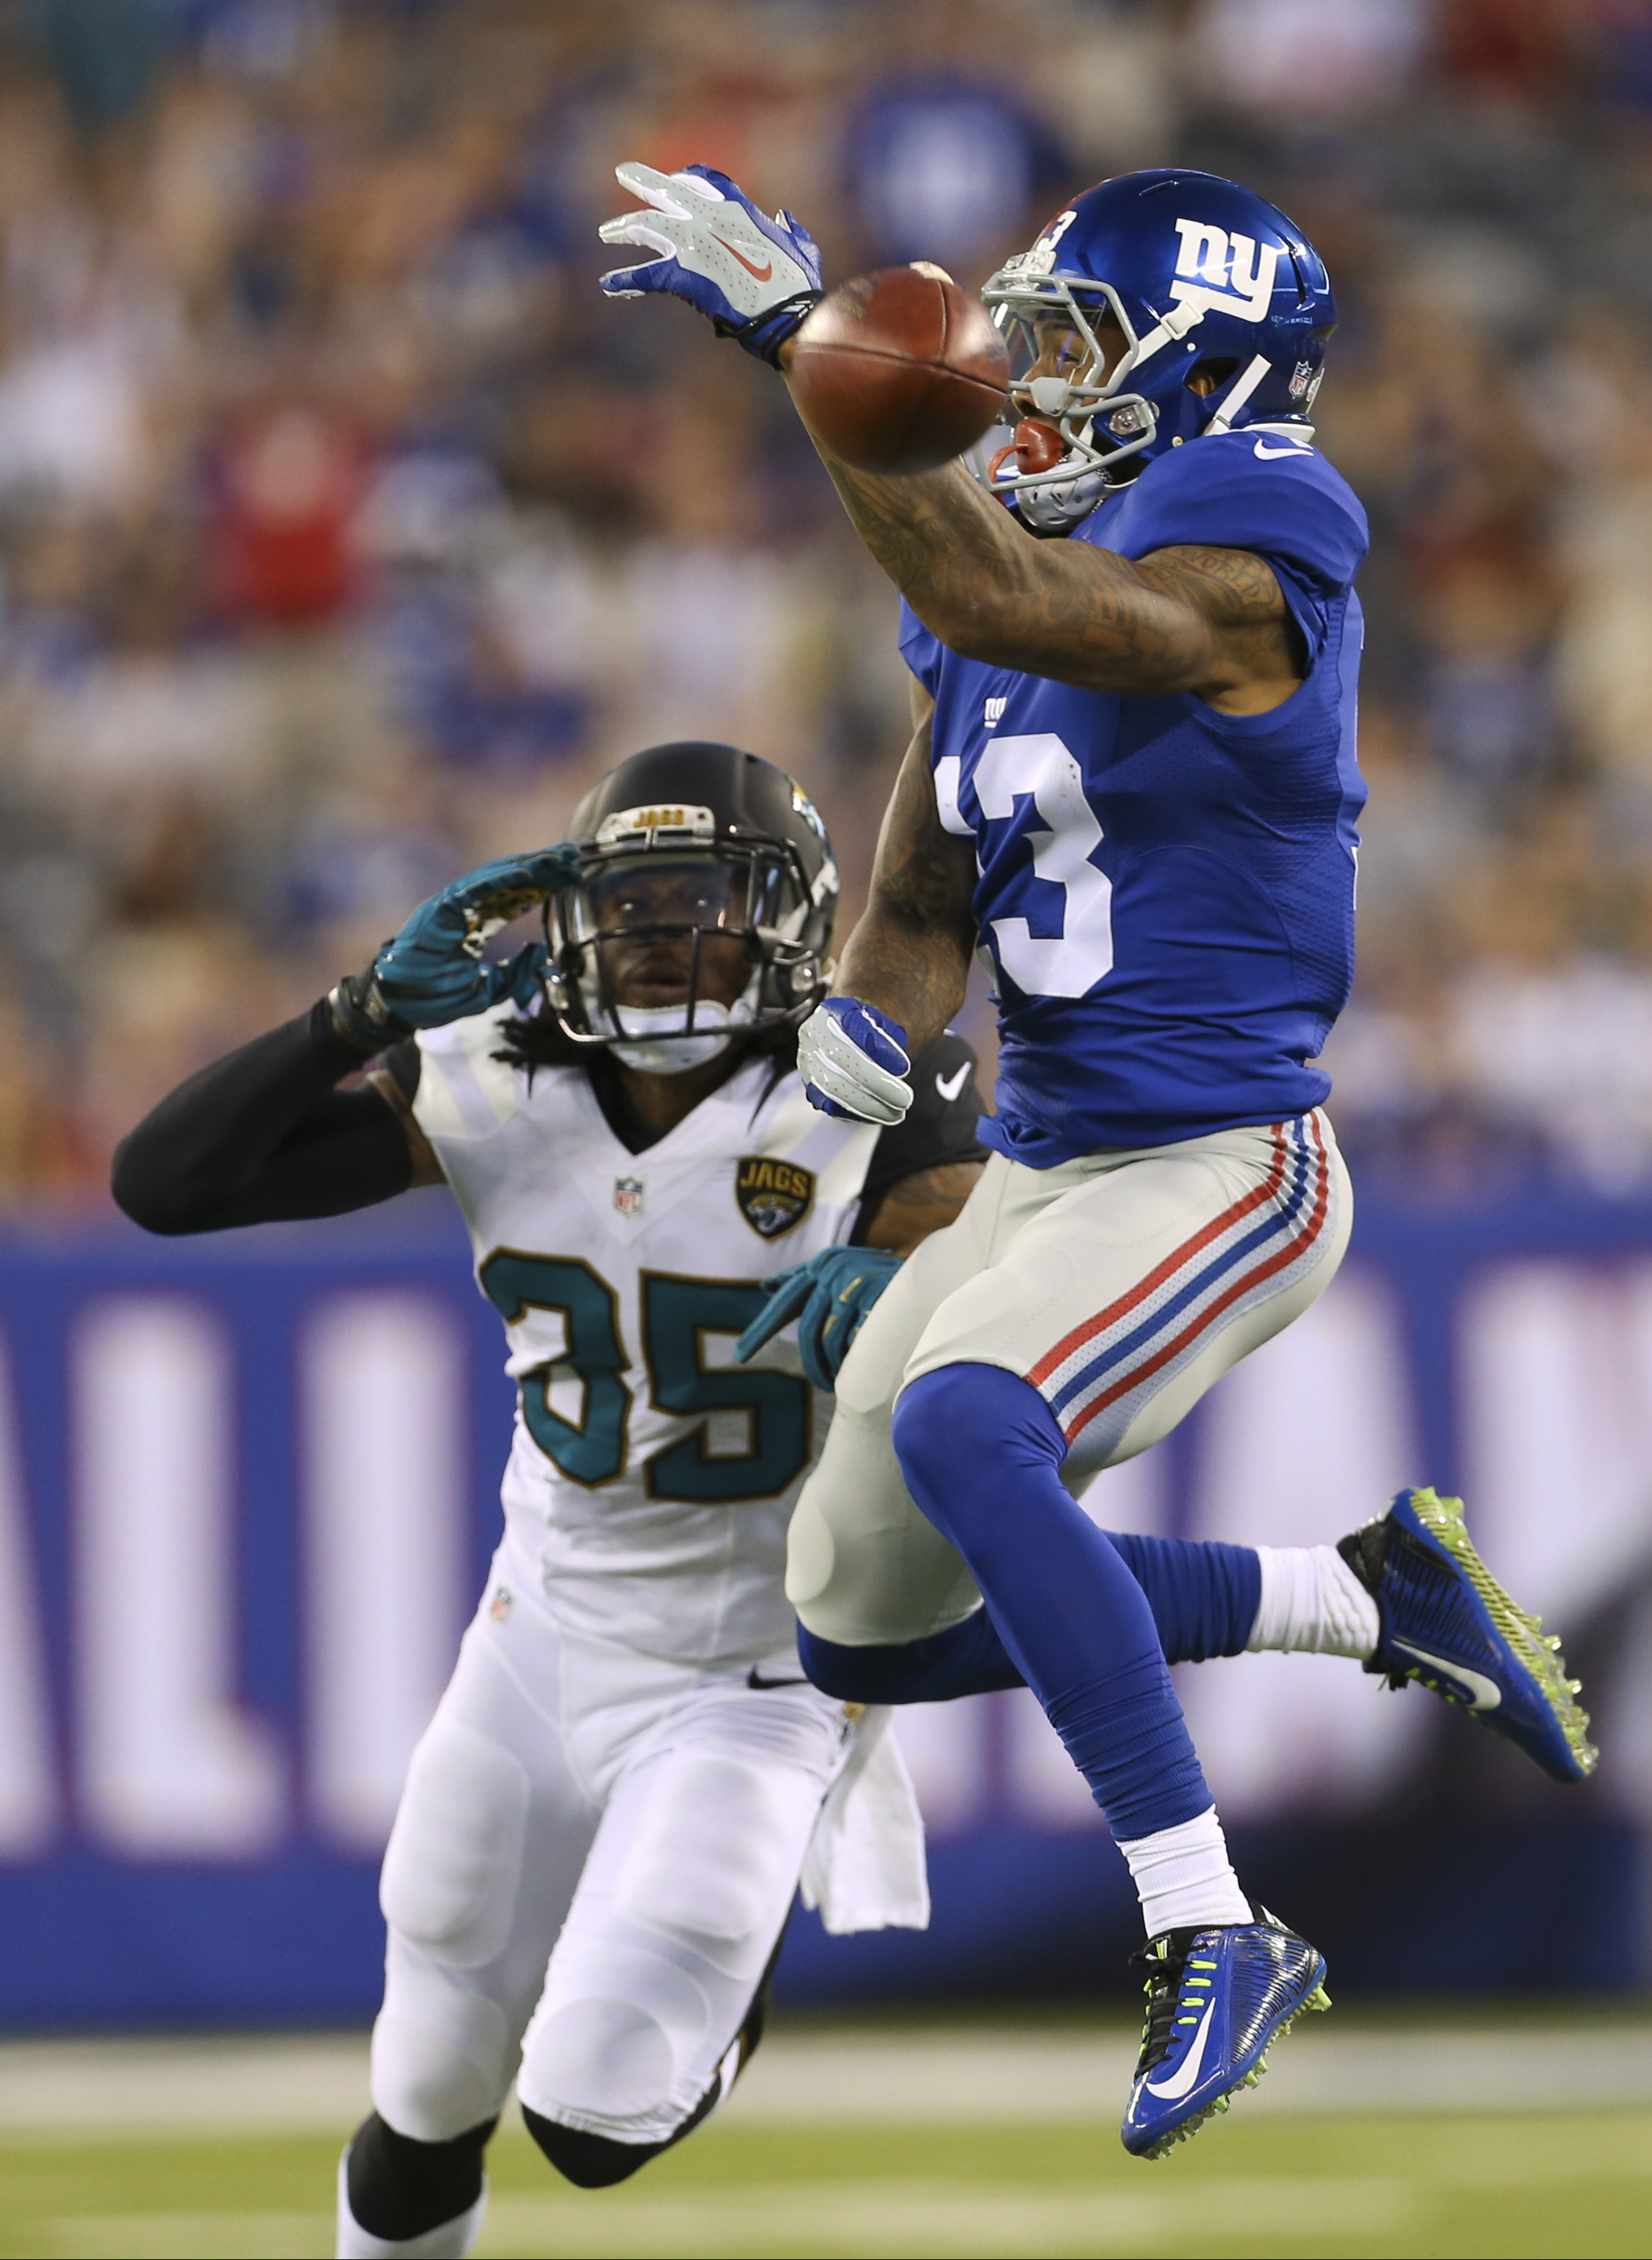 New York Giants wide receiver Odell Beckham (13) leaps for a ball thrown by quarterback Eli Manning as Jacksonville Jaguars' Demetrius McCray (35) watches during the first half of a preseason NFL football game Saturday, Aug. 22, 2015, in East Rutherford,